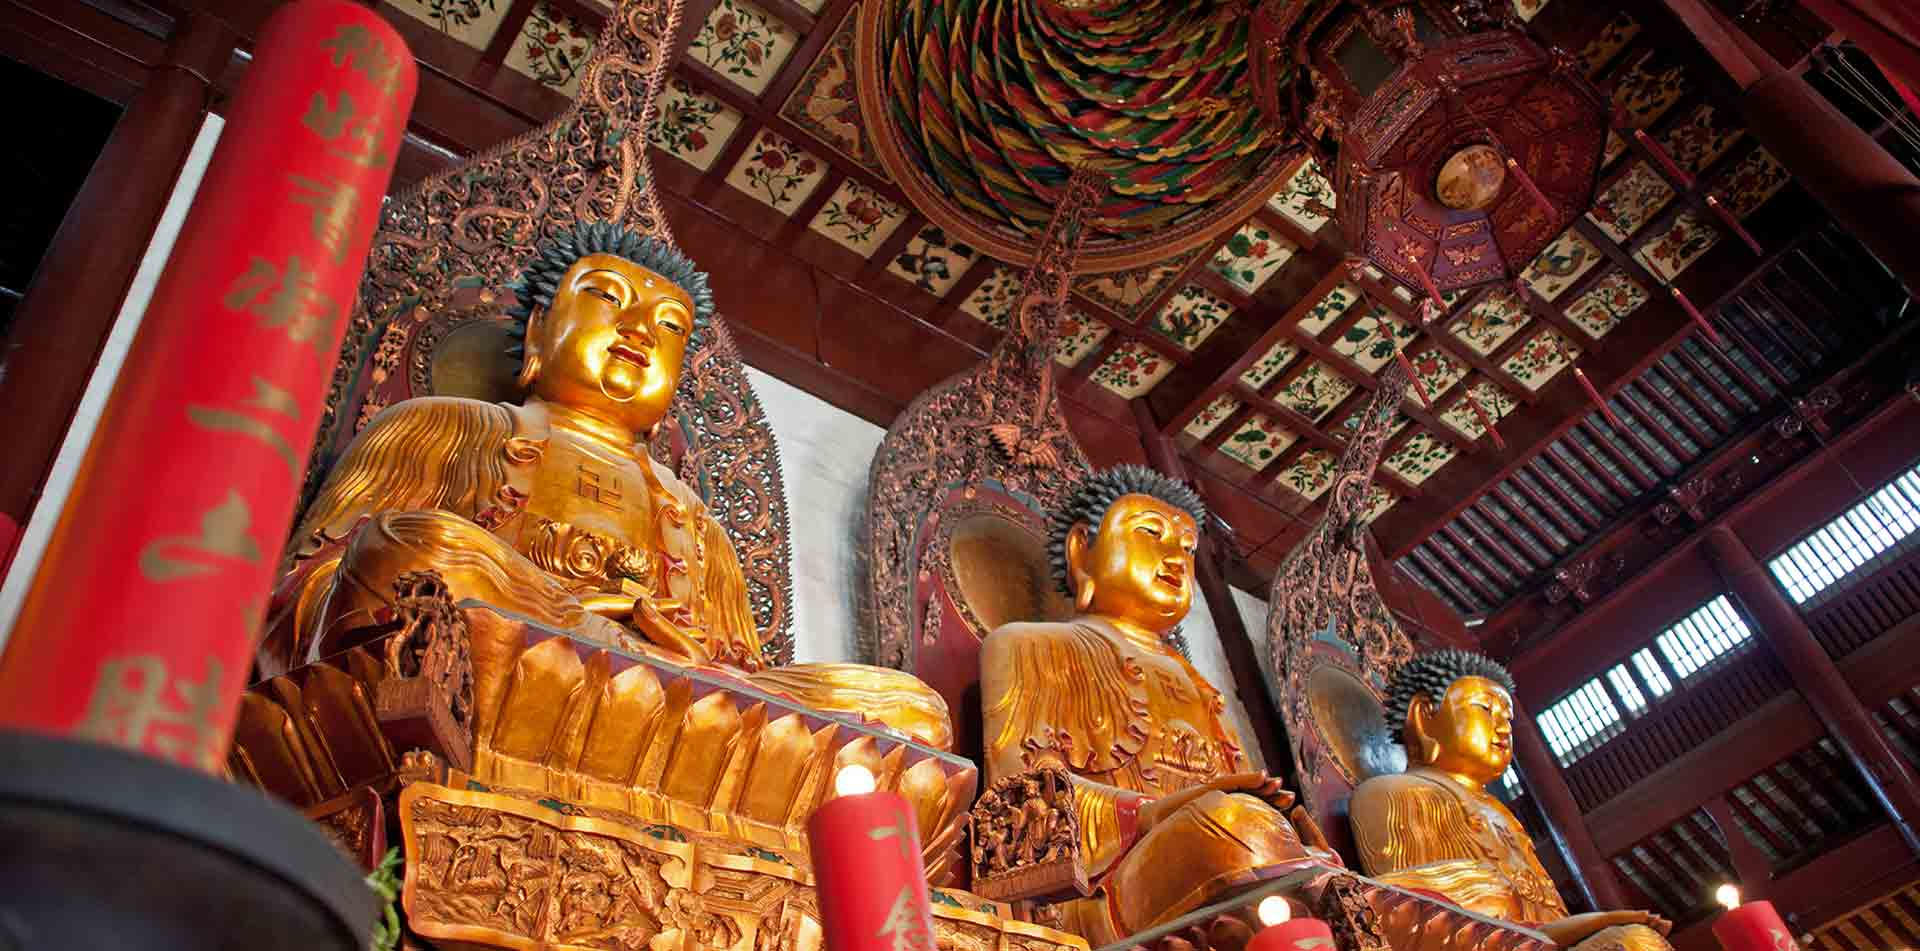 Asia China Shanghai Jade Buddha Temple monastery with three large Buddha statues - luxury vacation destinations